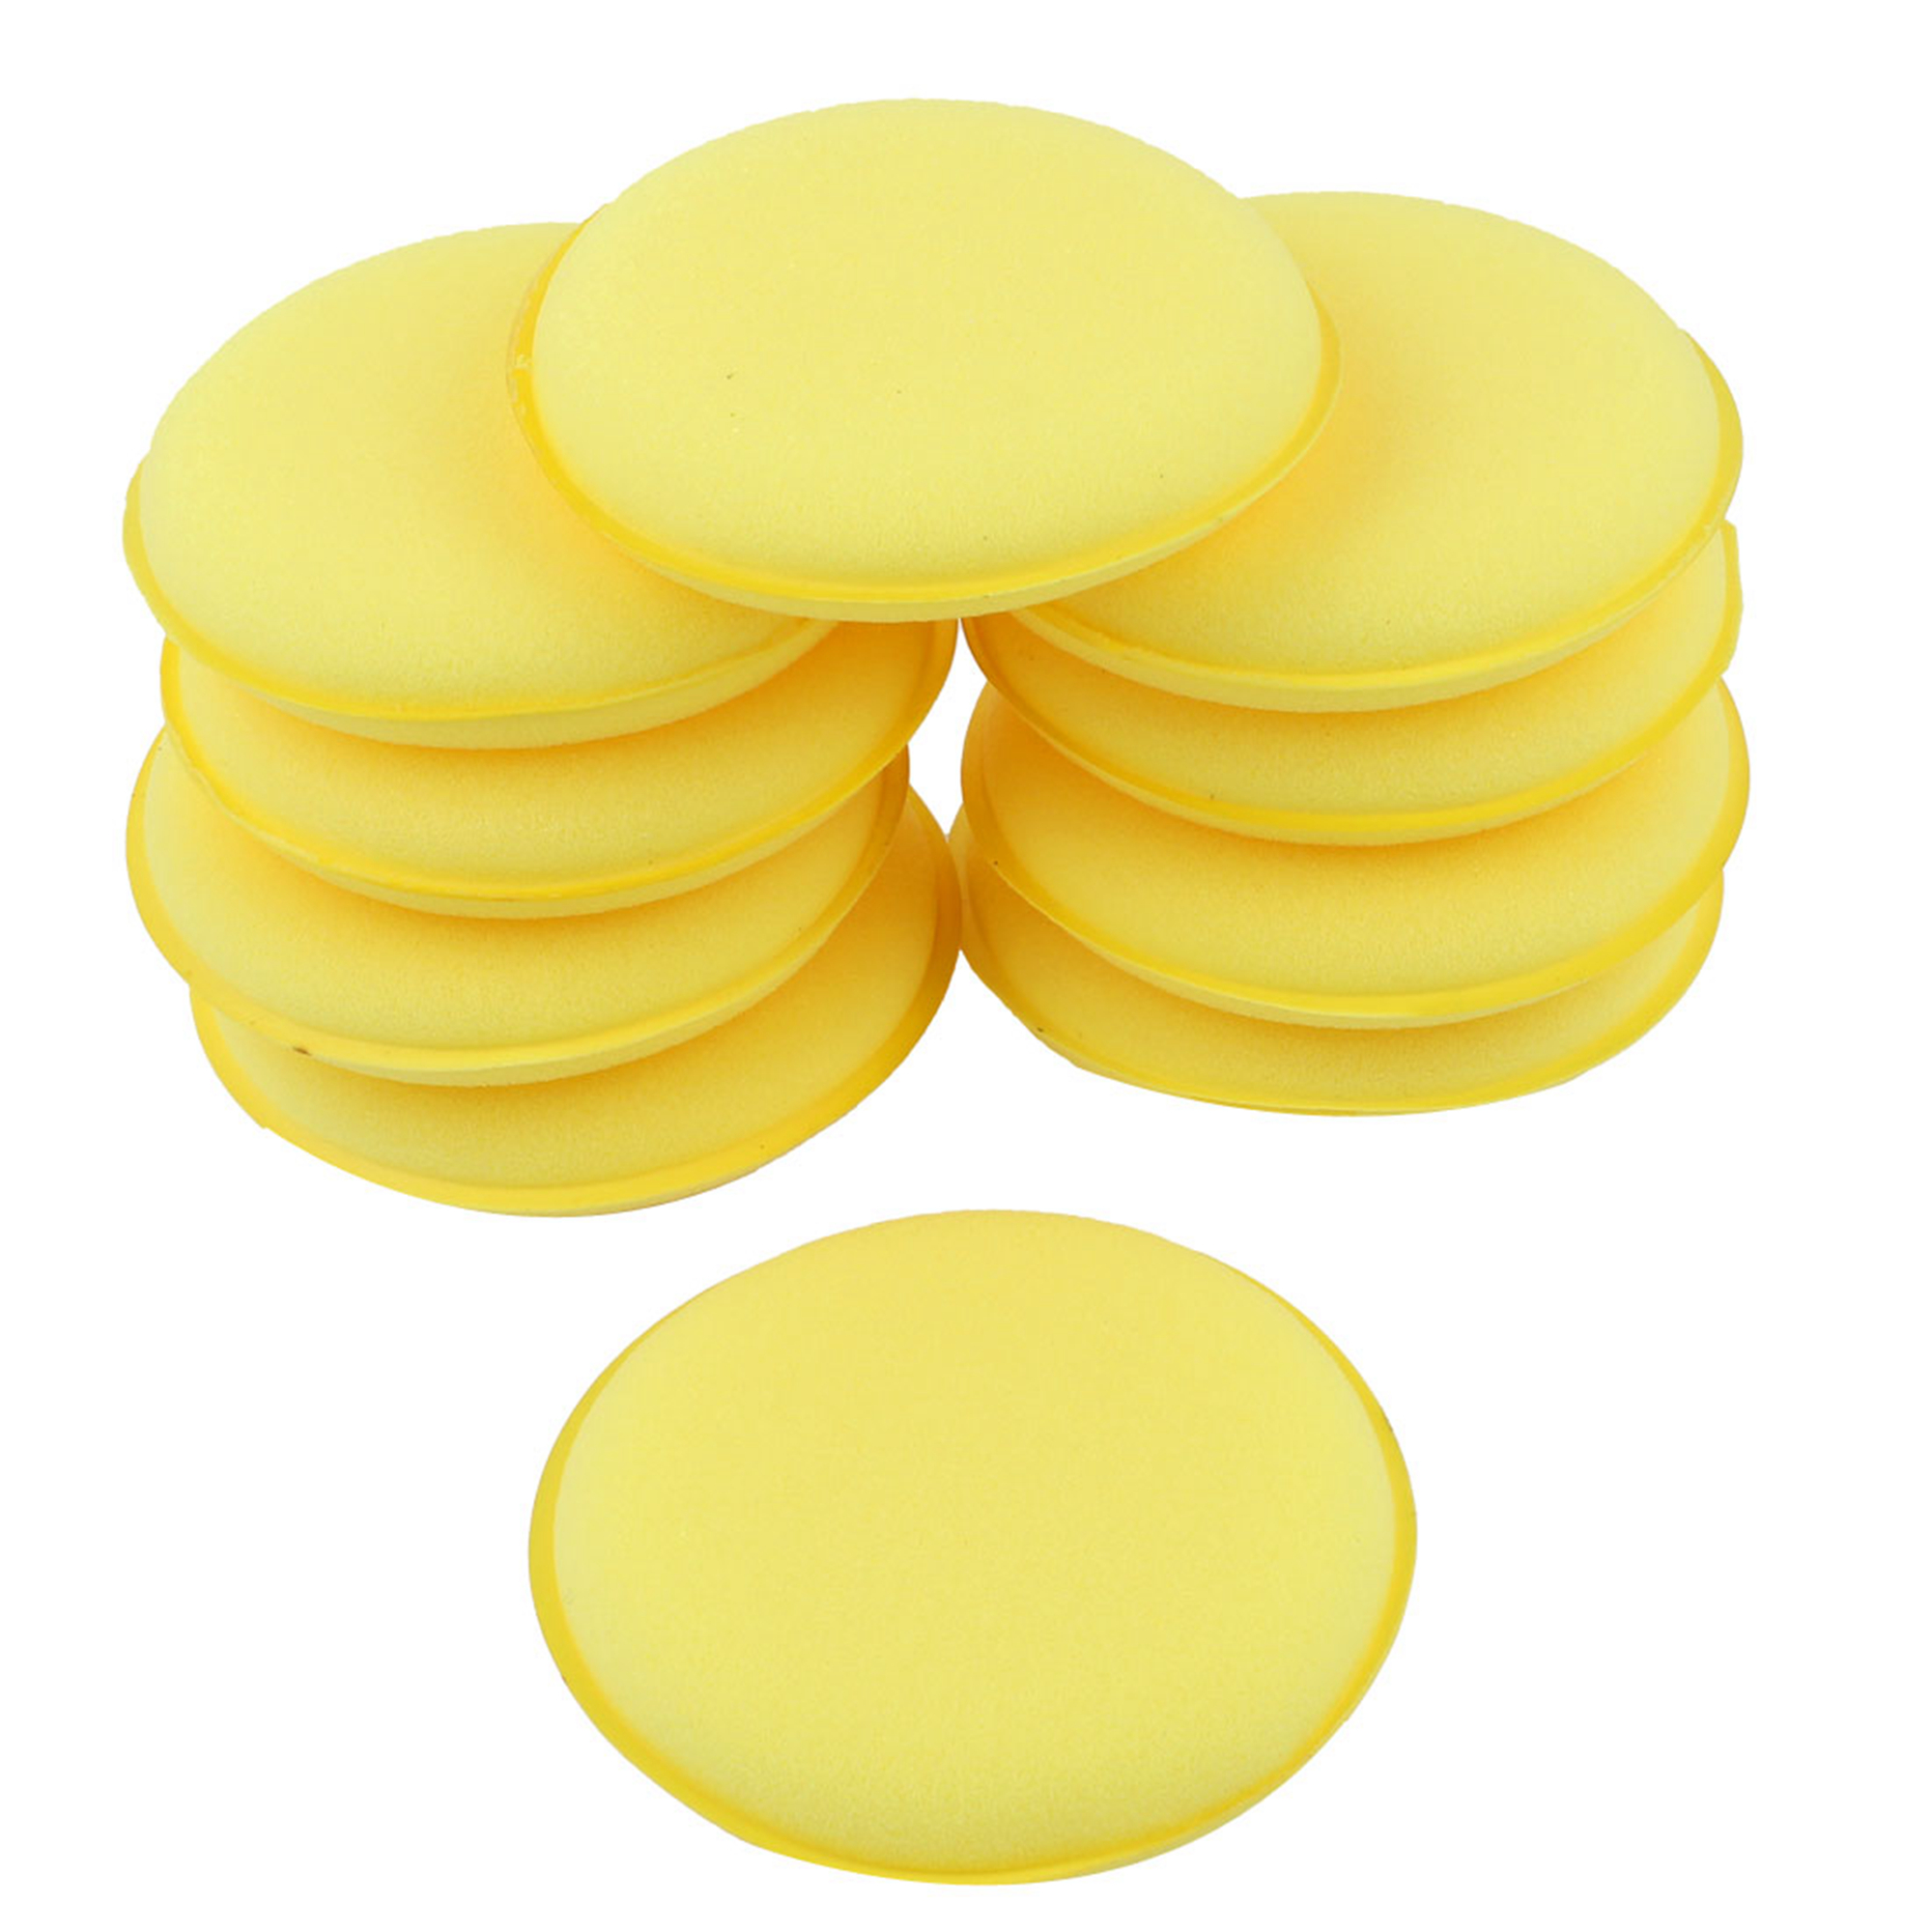 "10 Pcs Round Shaped 4"" Dia Sponge Wax Applicator Pads Yellow for Car"